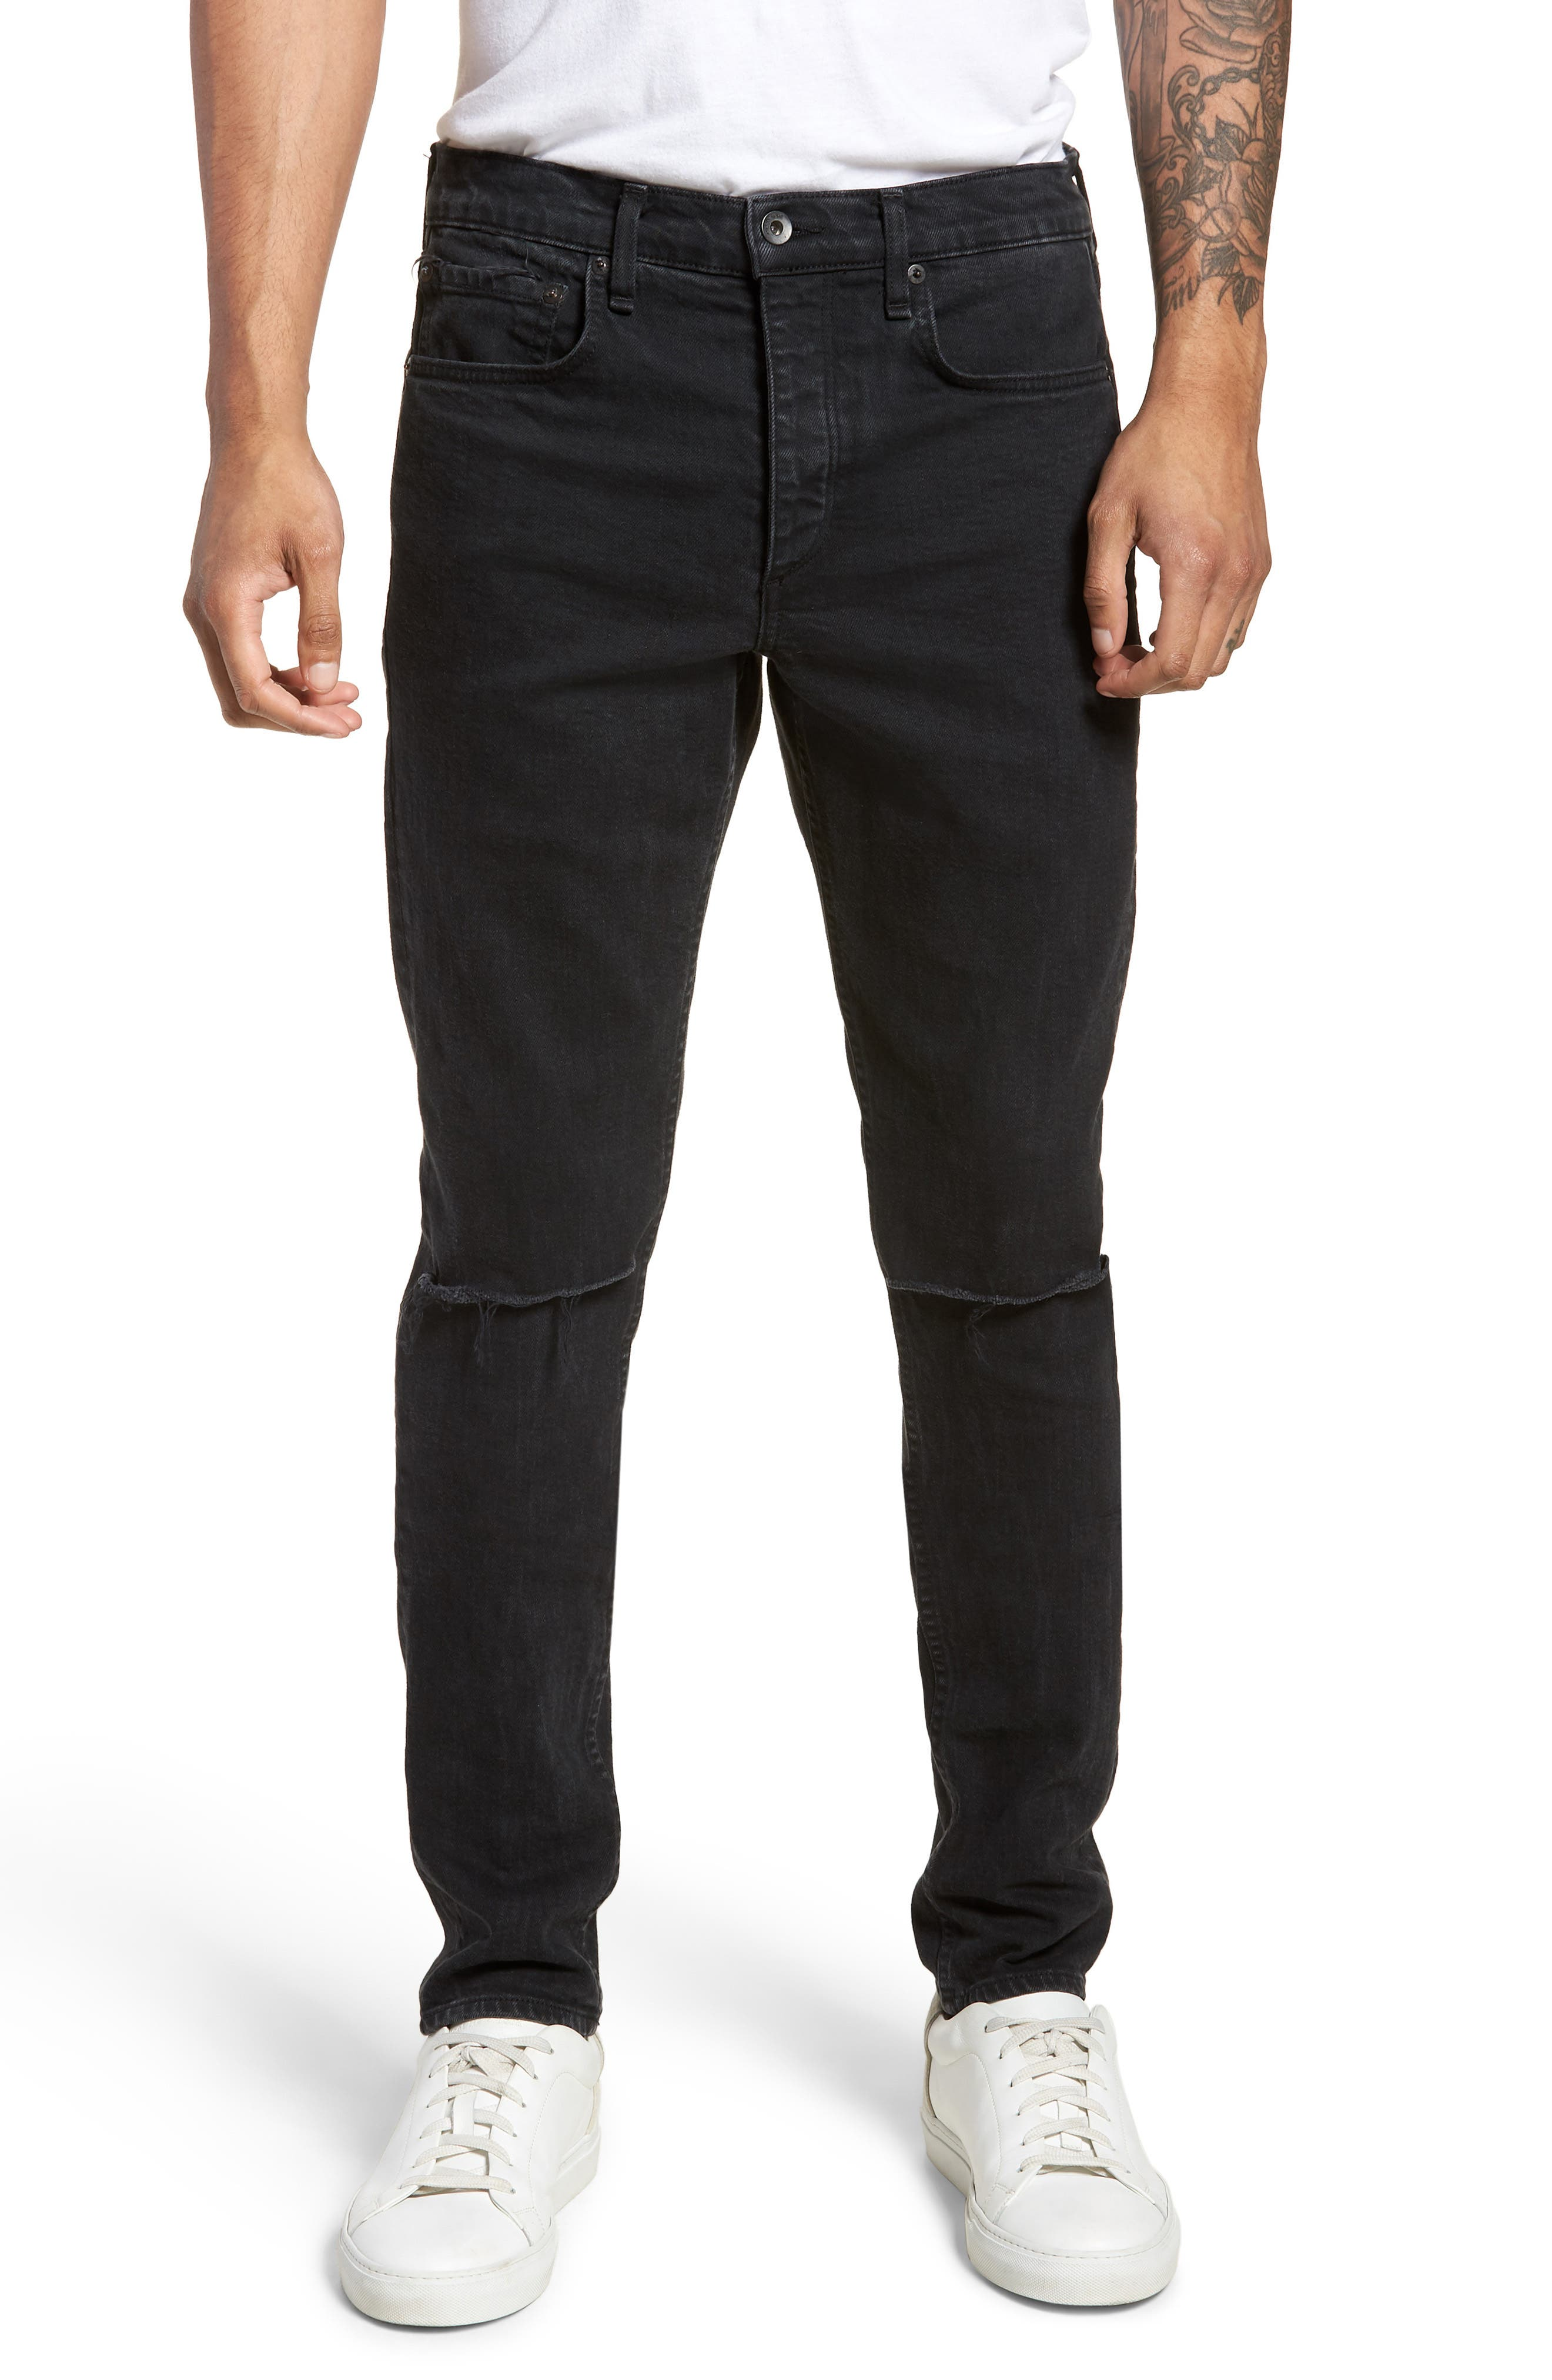 Fit 1 Skinny Fit Jeans,                             Main thumbnail 1, color,                             Shelter W/ Holes